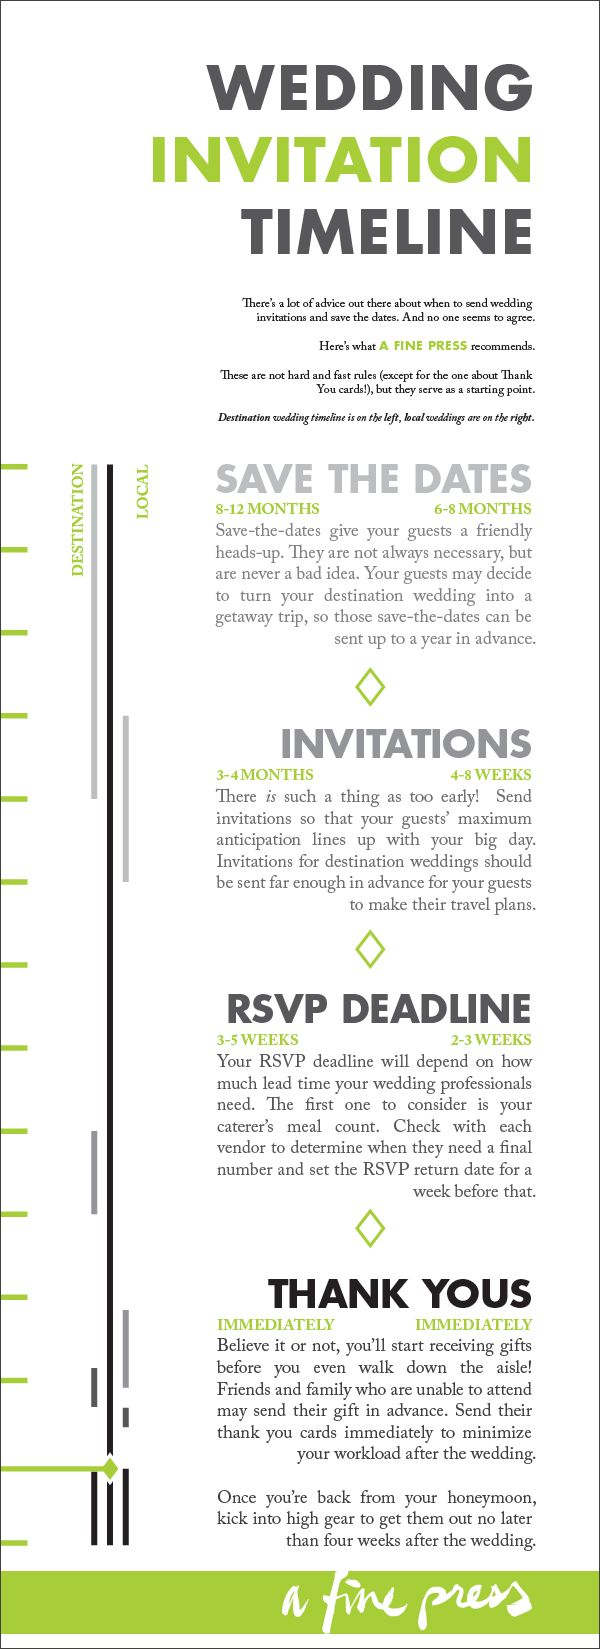 442 best invite. images on Pinterest | Invitations, Wedding ideas ...